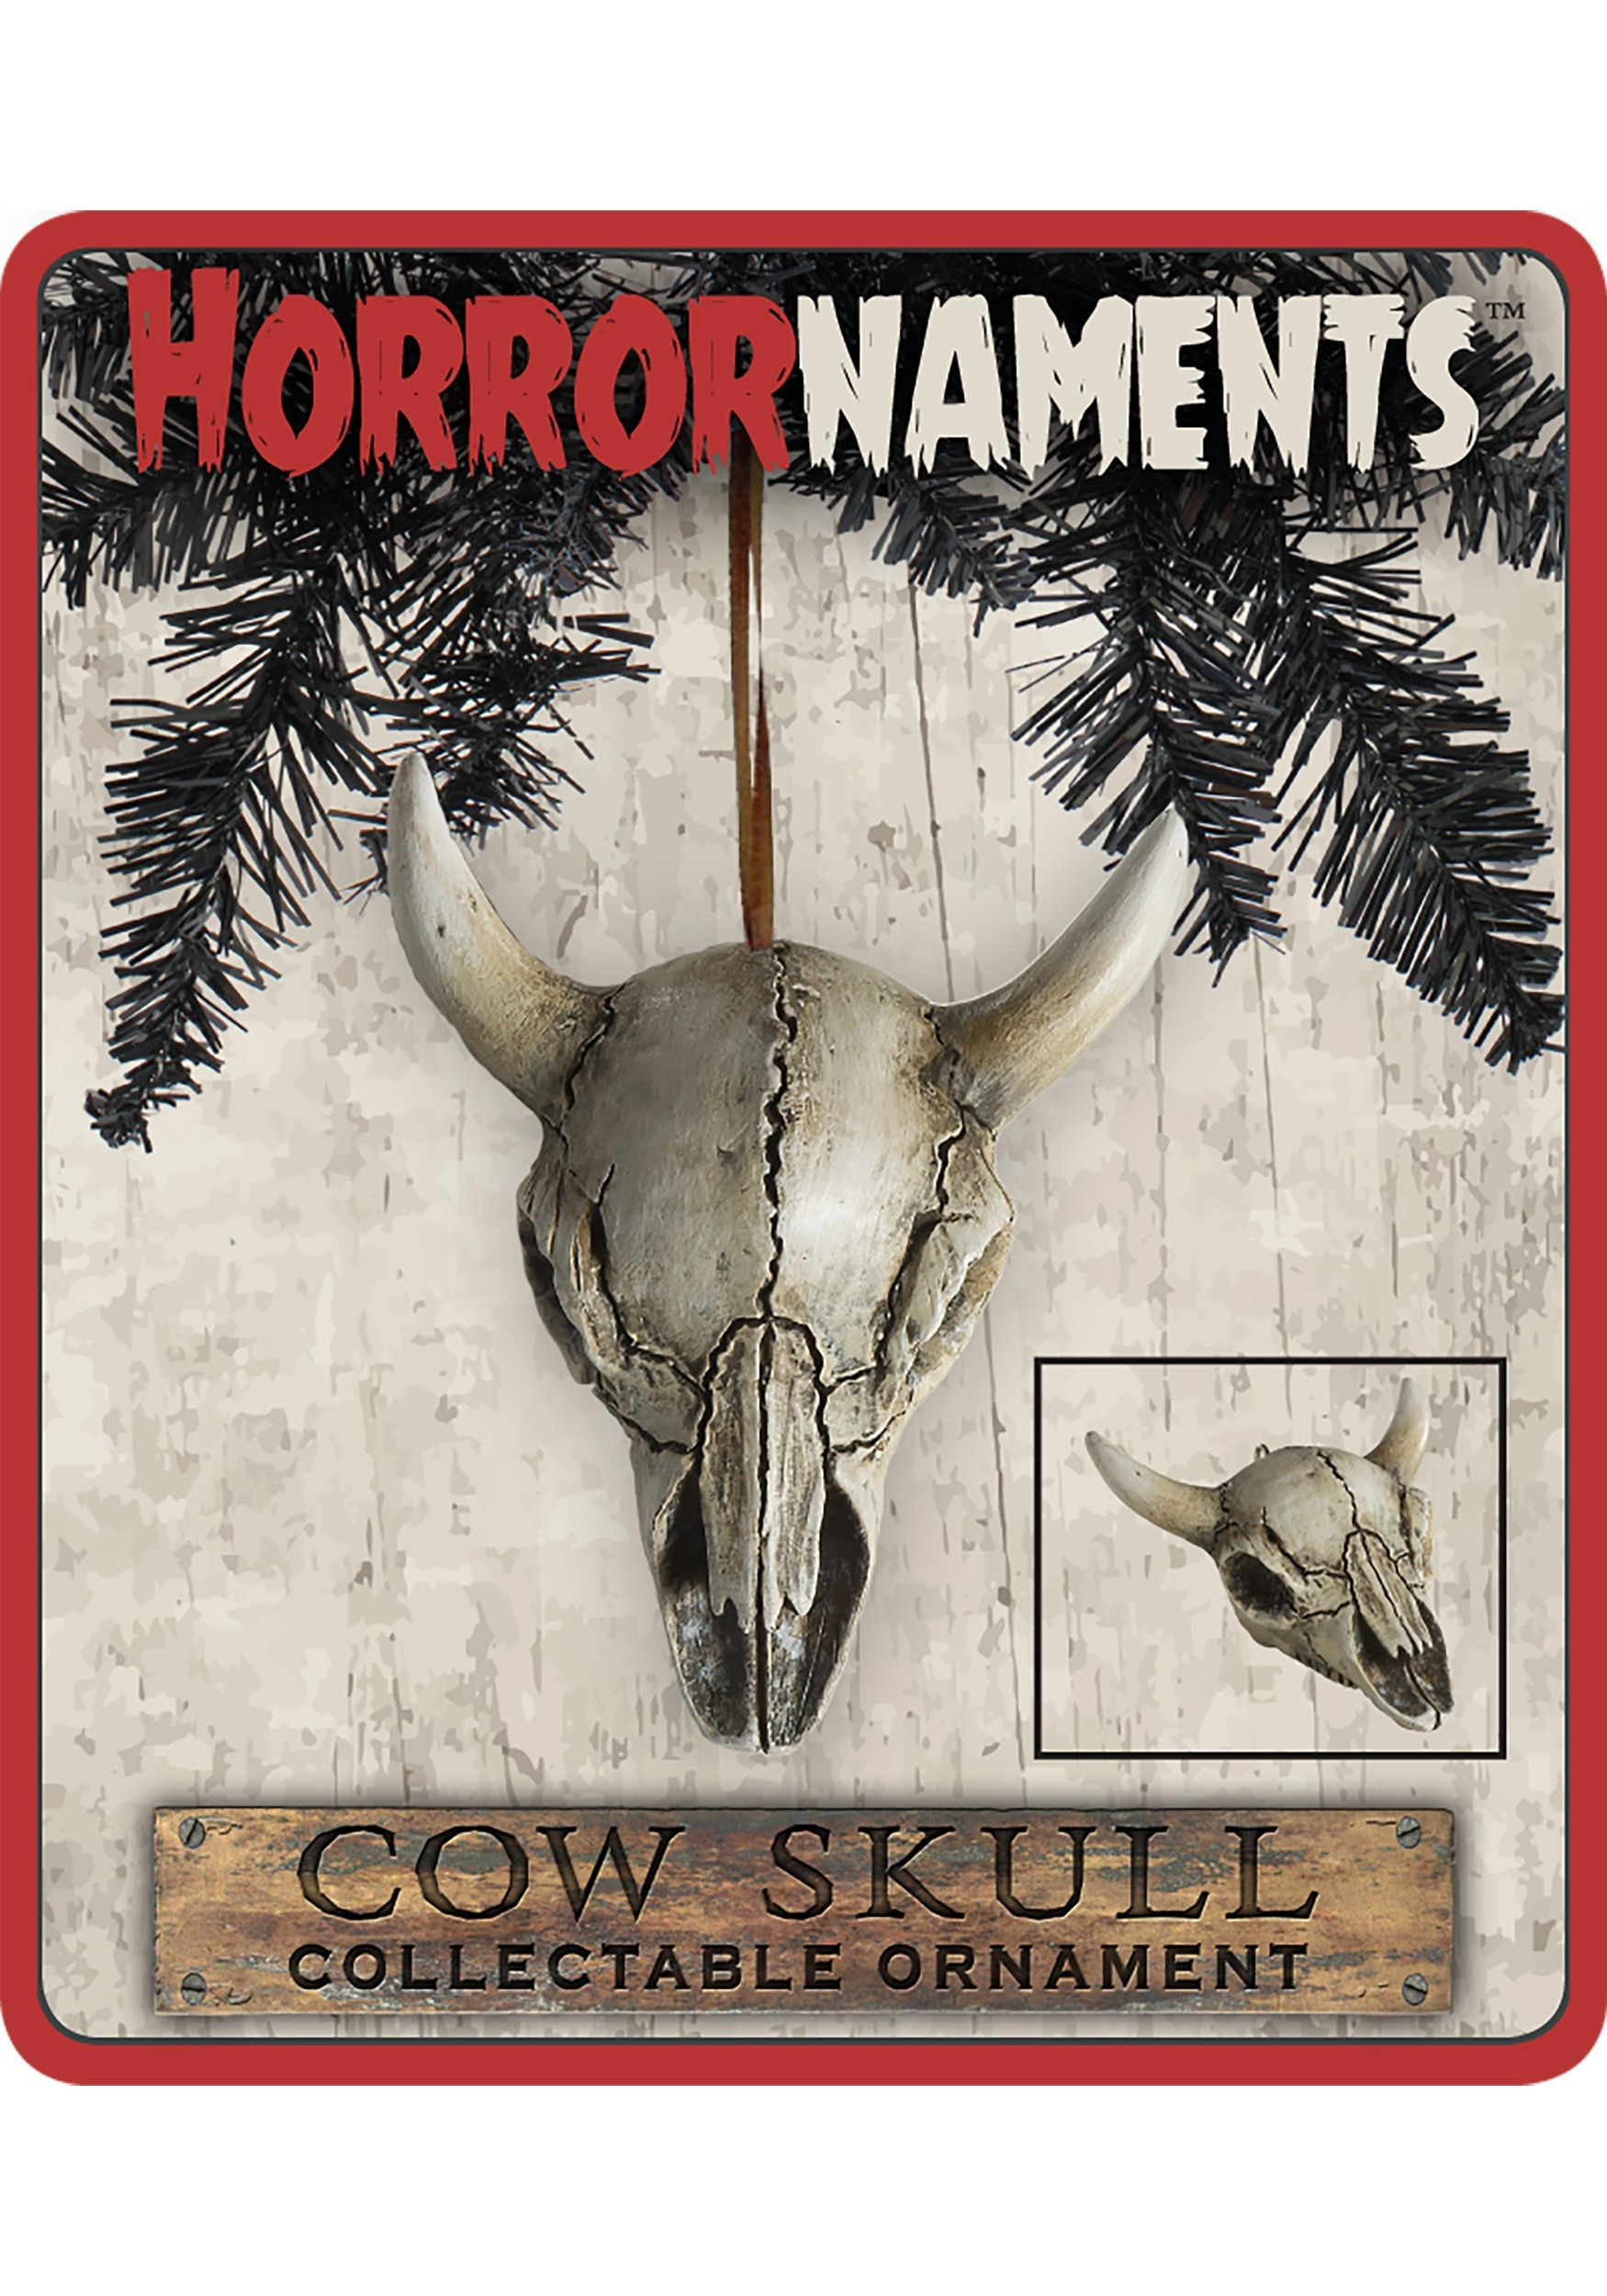 Cow Skull Horrornaments Molded Ornament